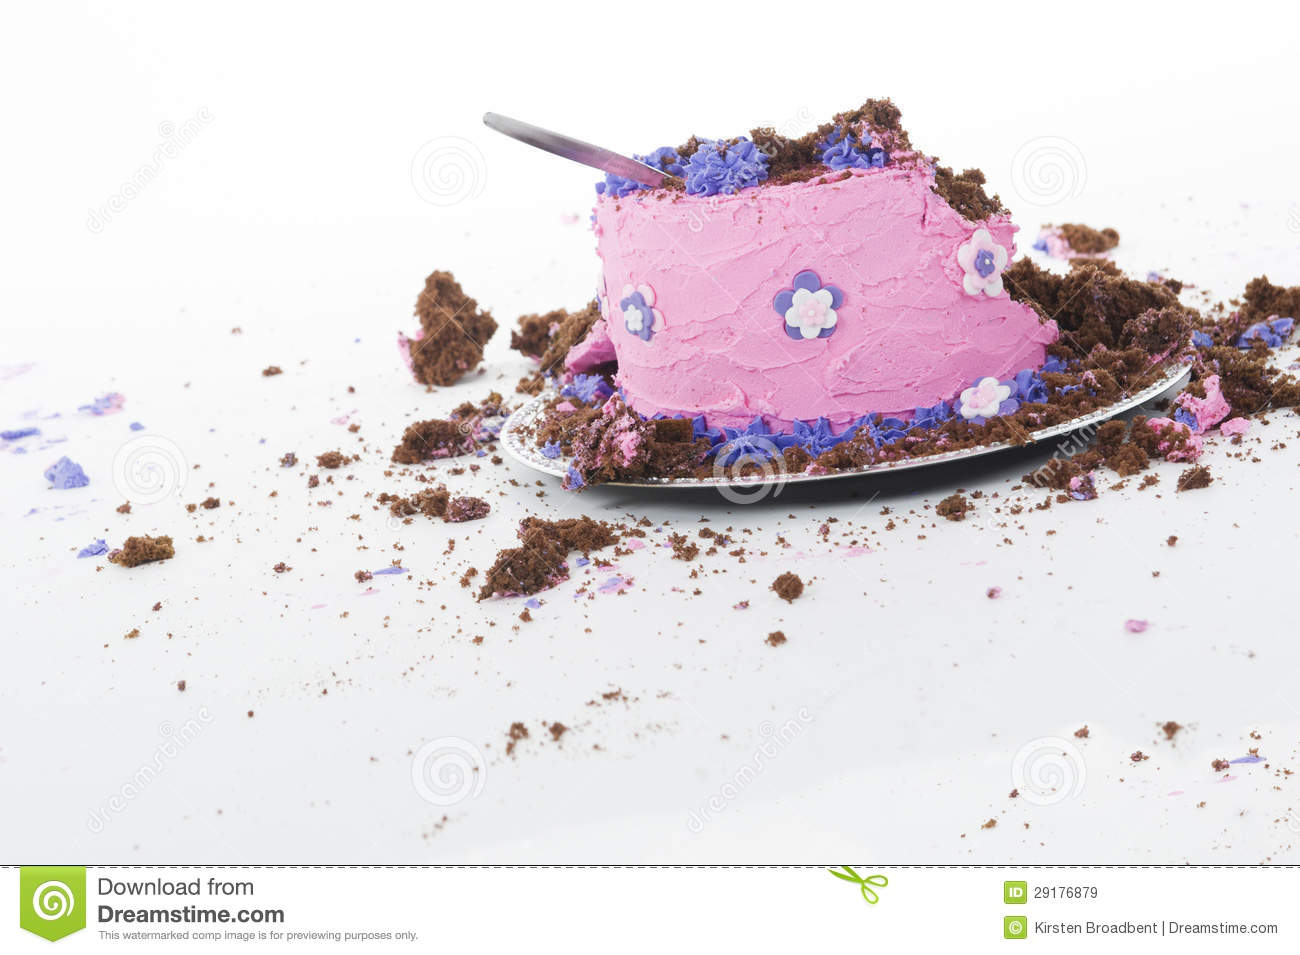 Smashed Cake Clipart : Cake Smash Shoot: Big Messy Cake After Photoshoot! Royalty ...